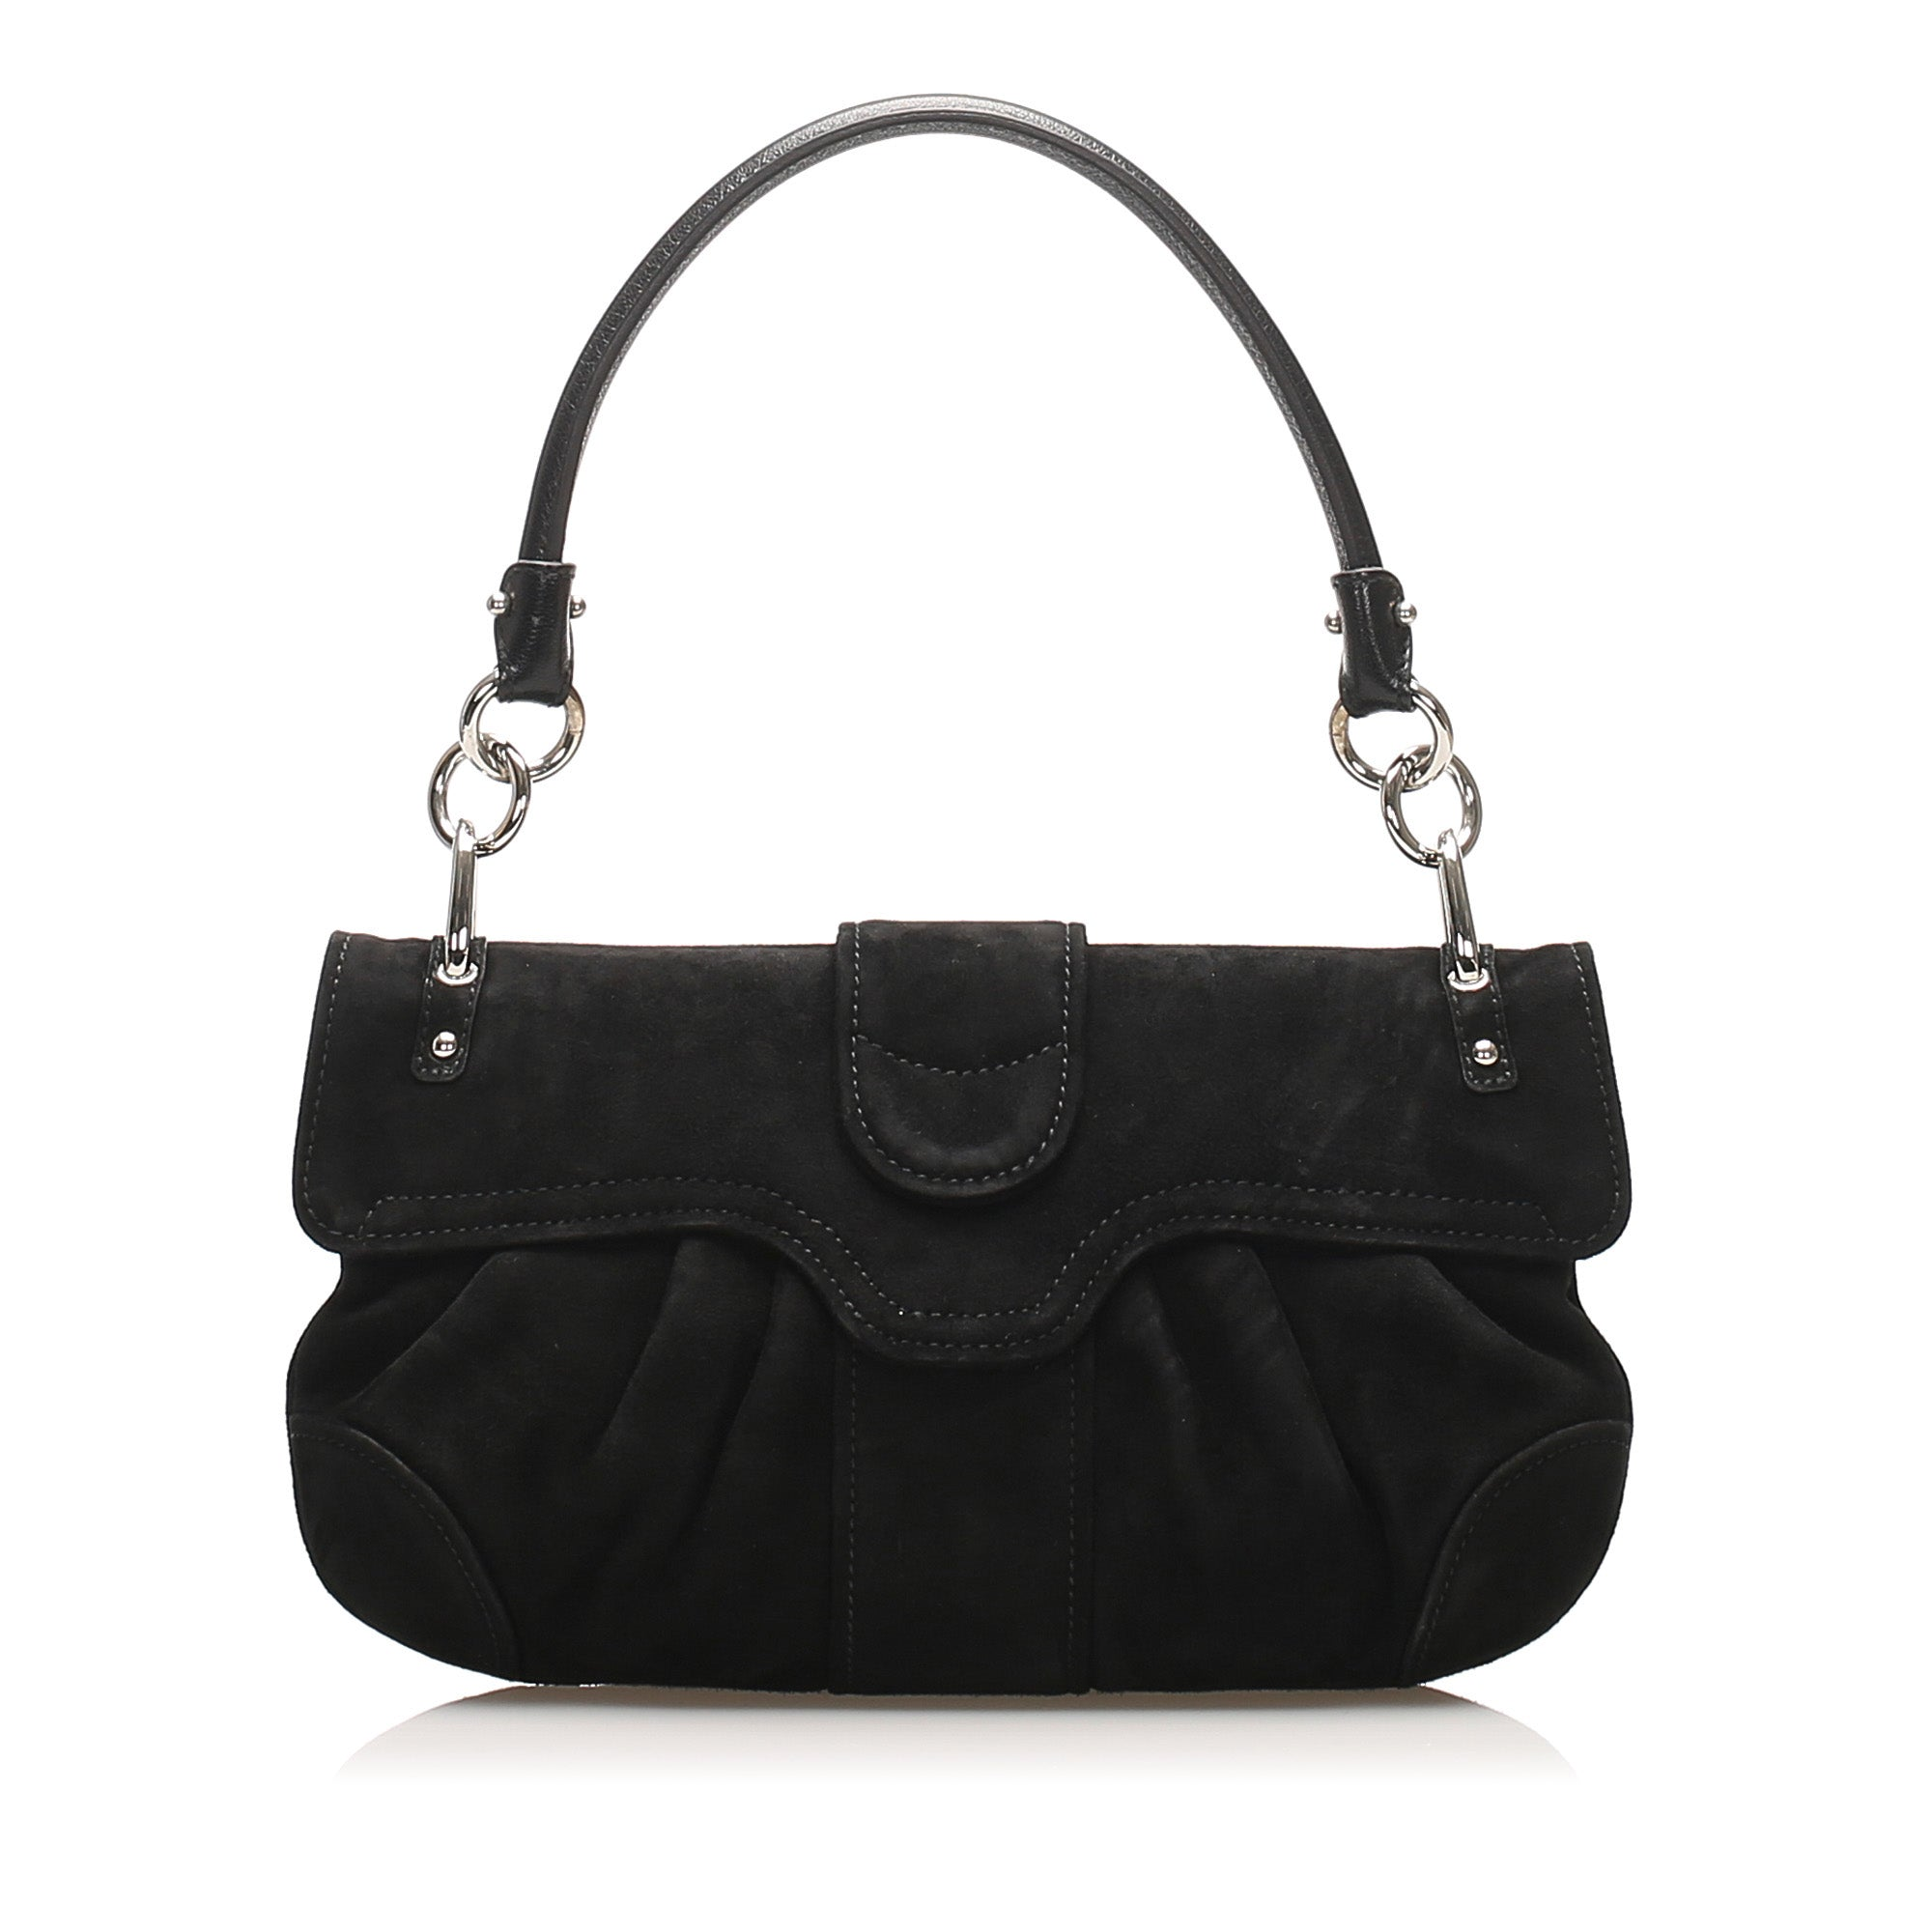 Ferragamo Black Gancini Suede Shoulder Bag